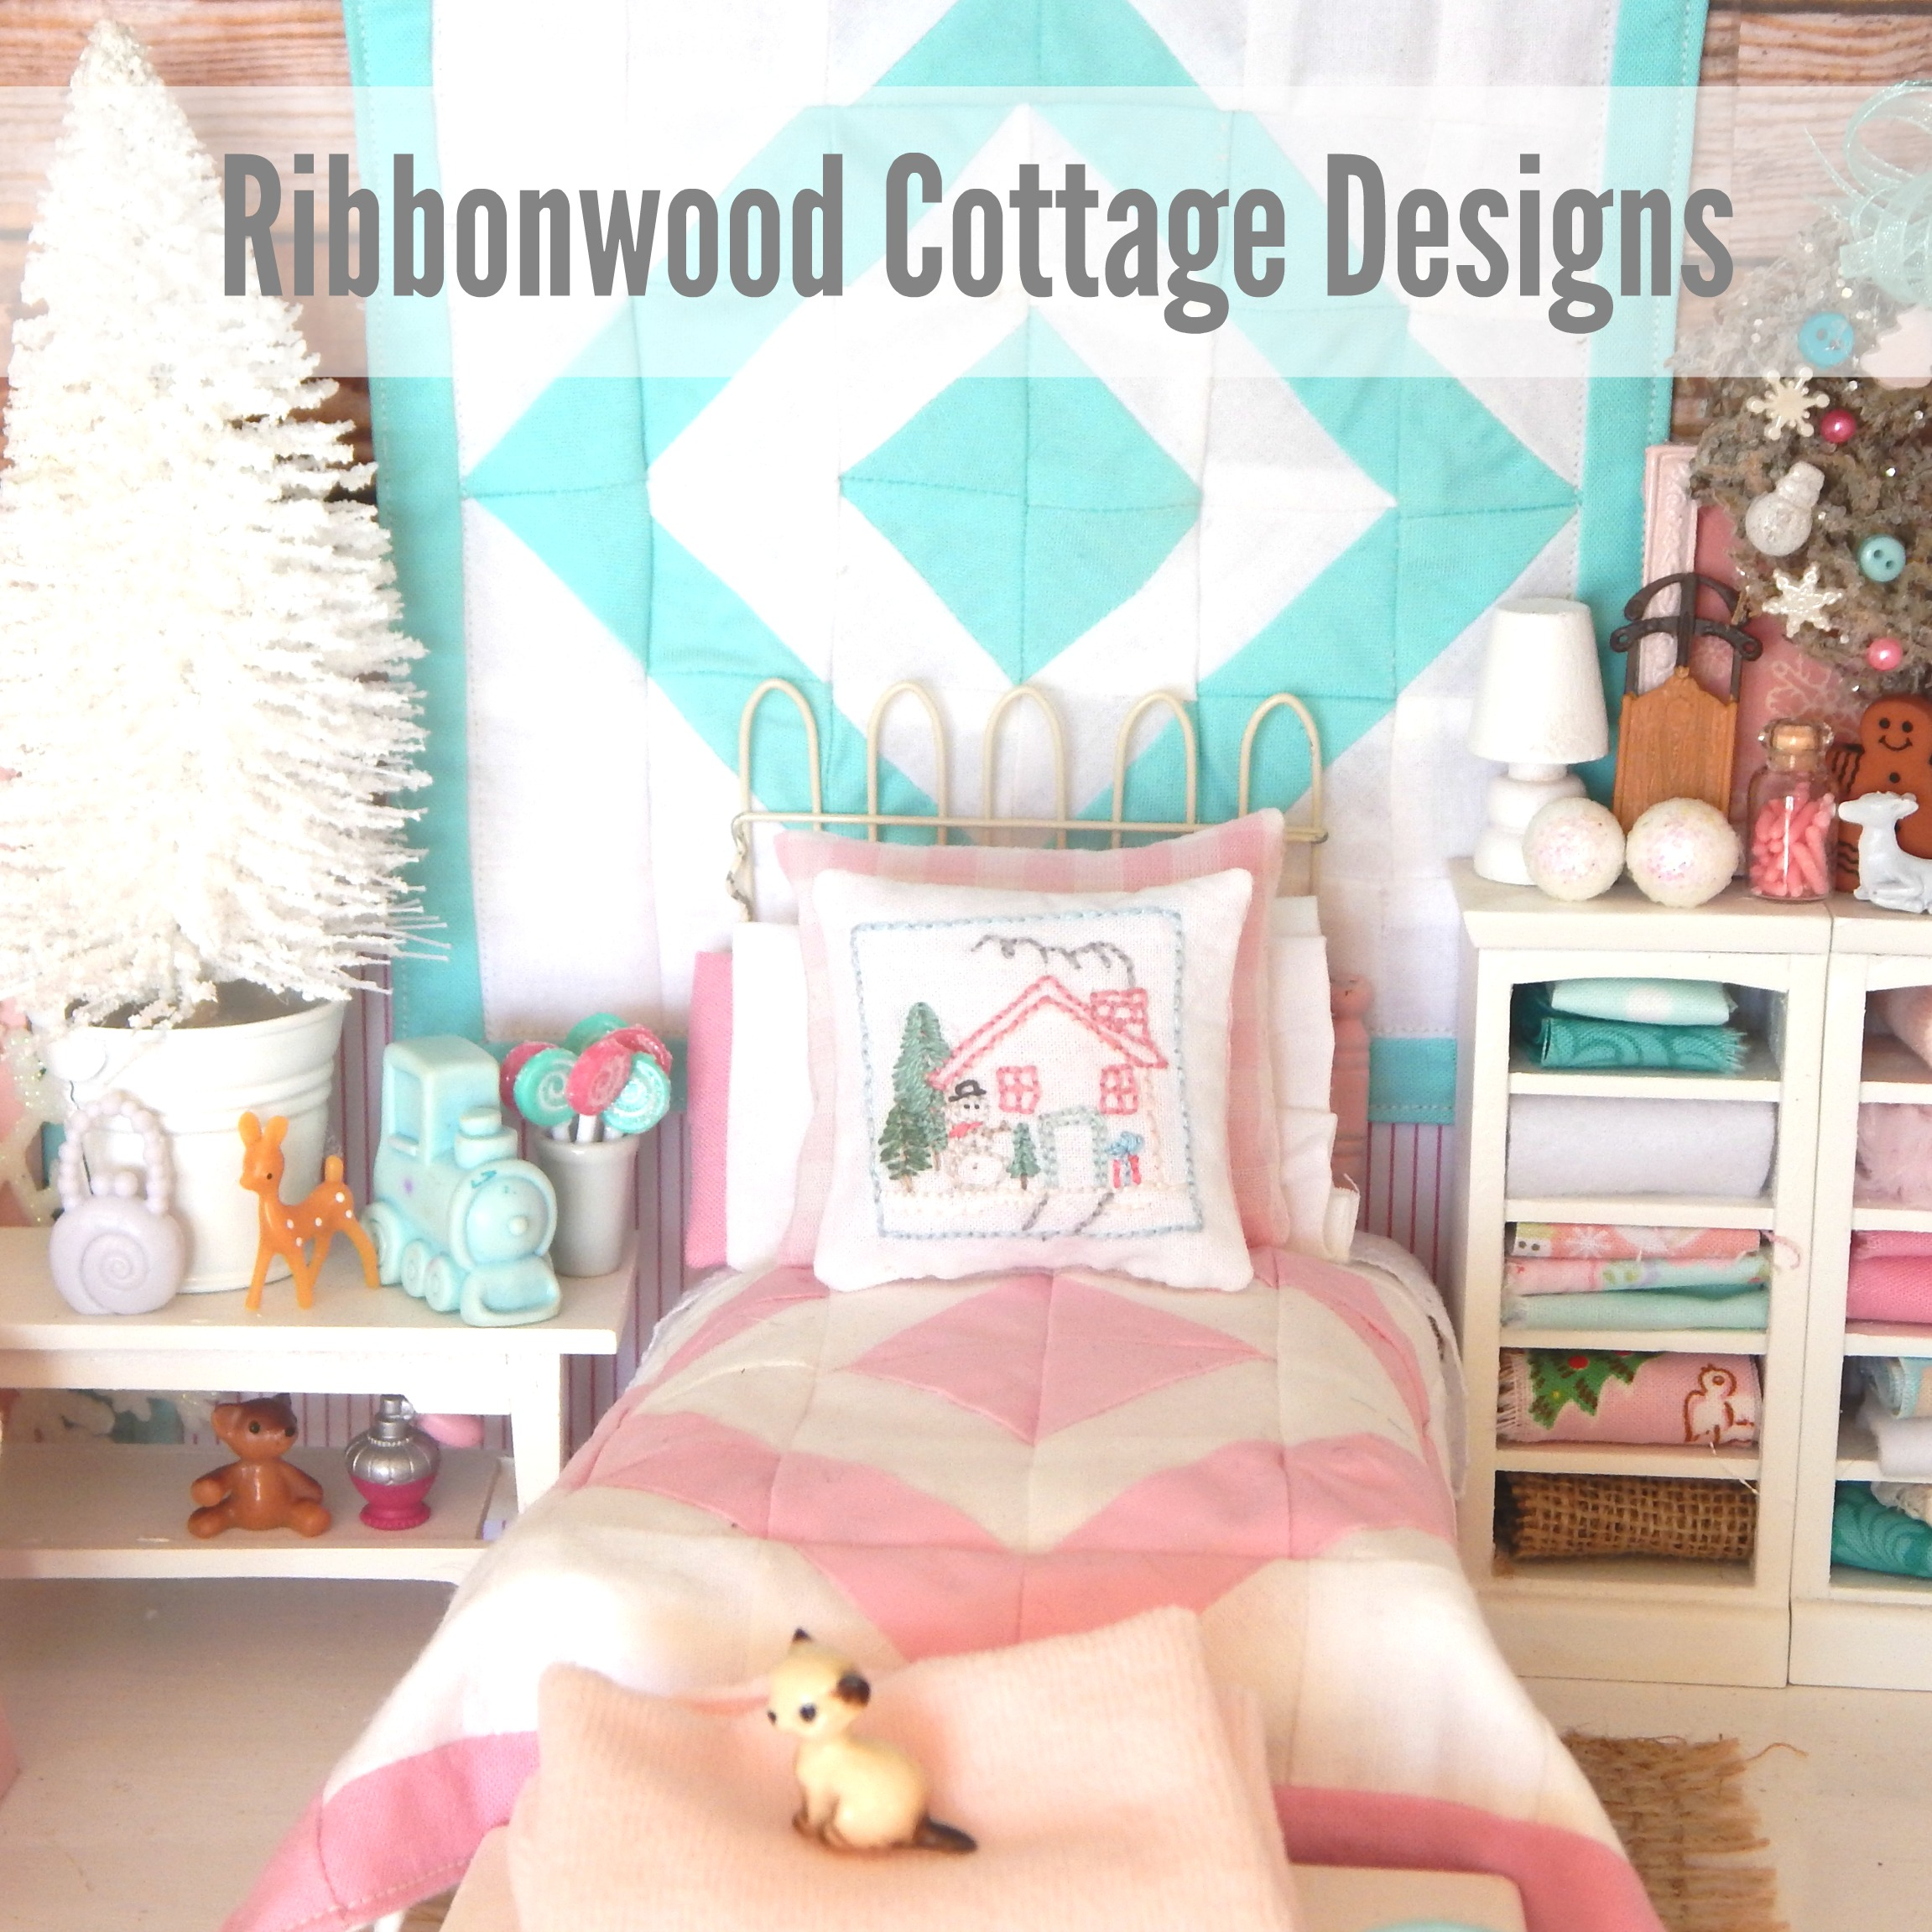 Miniature Dollhouse Pink and White Quilt, Sheet, Pillowcases, Snowman Embroidery Pillow PDF Pattern